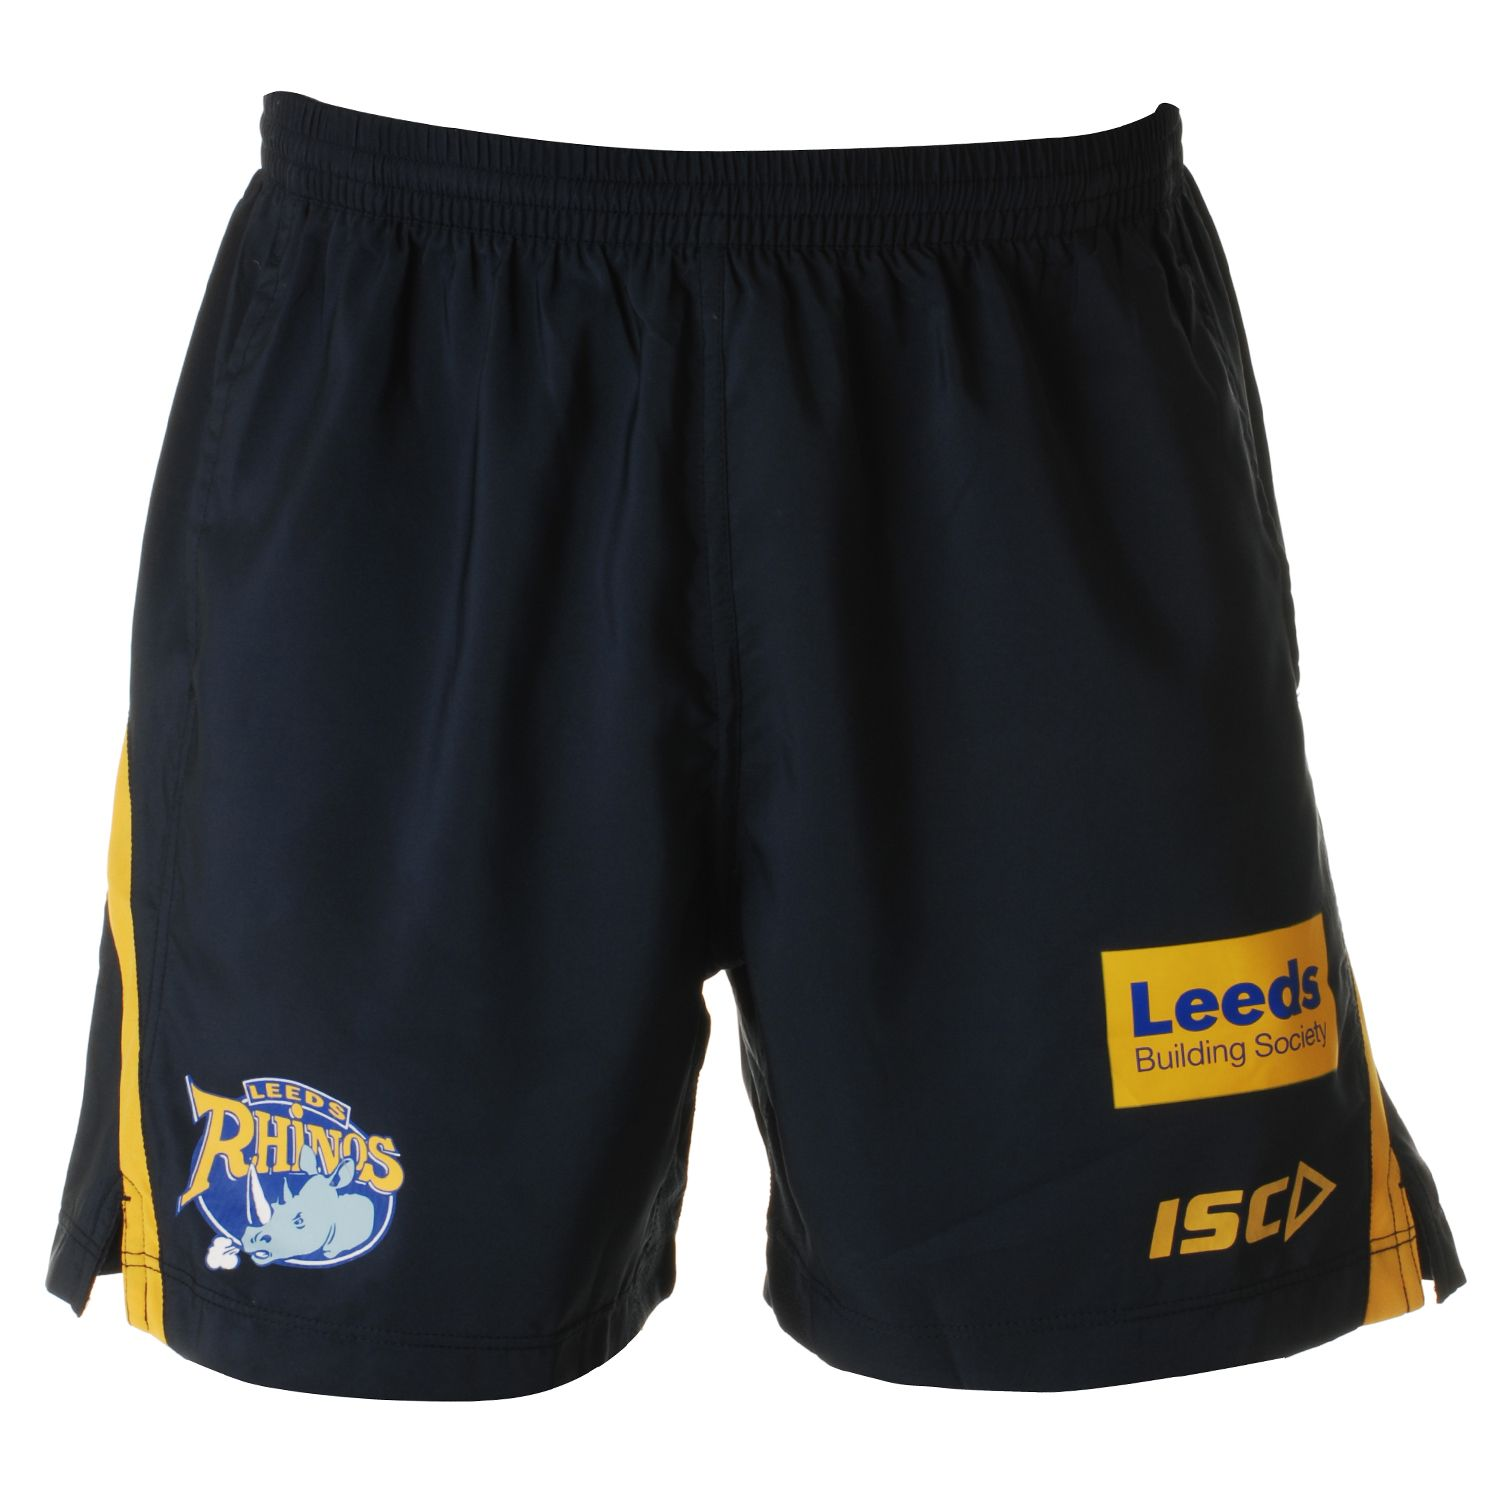 Leeds-Rhinos-Rugby-League-Mens-Training-Shorts